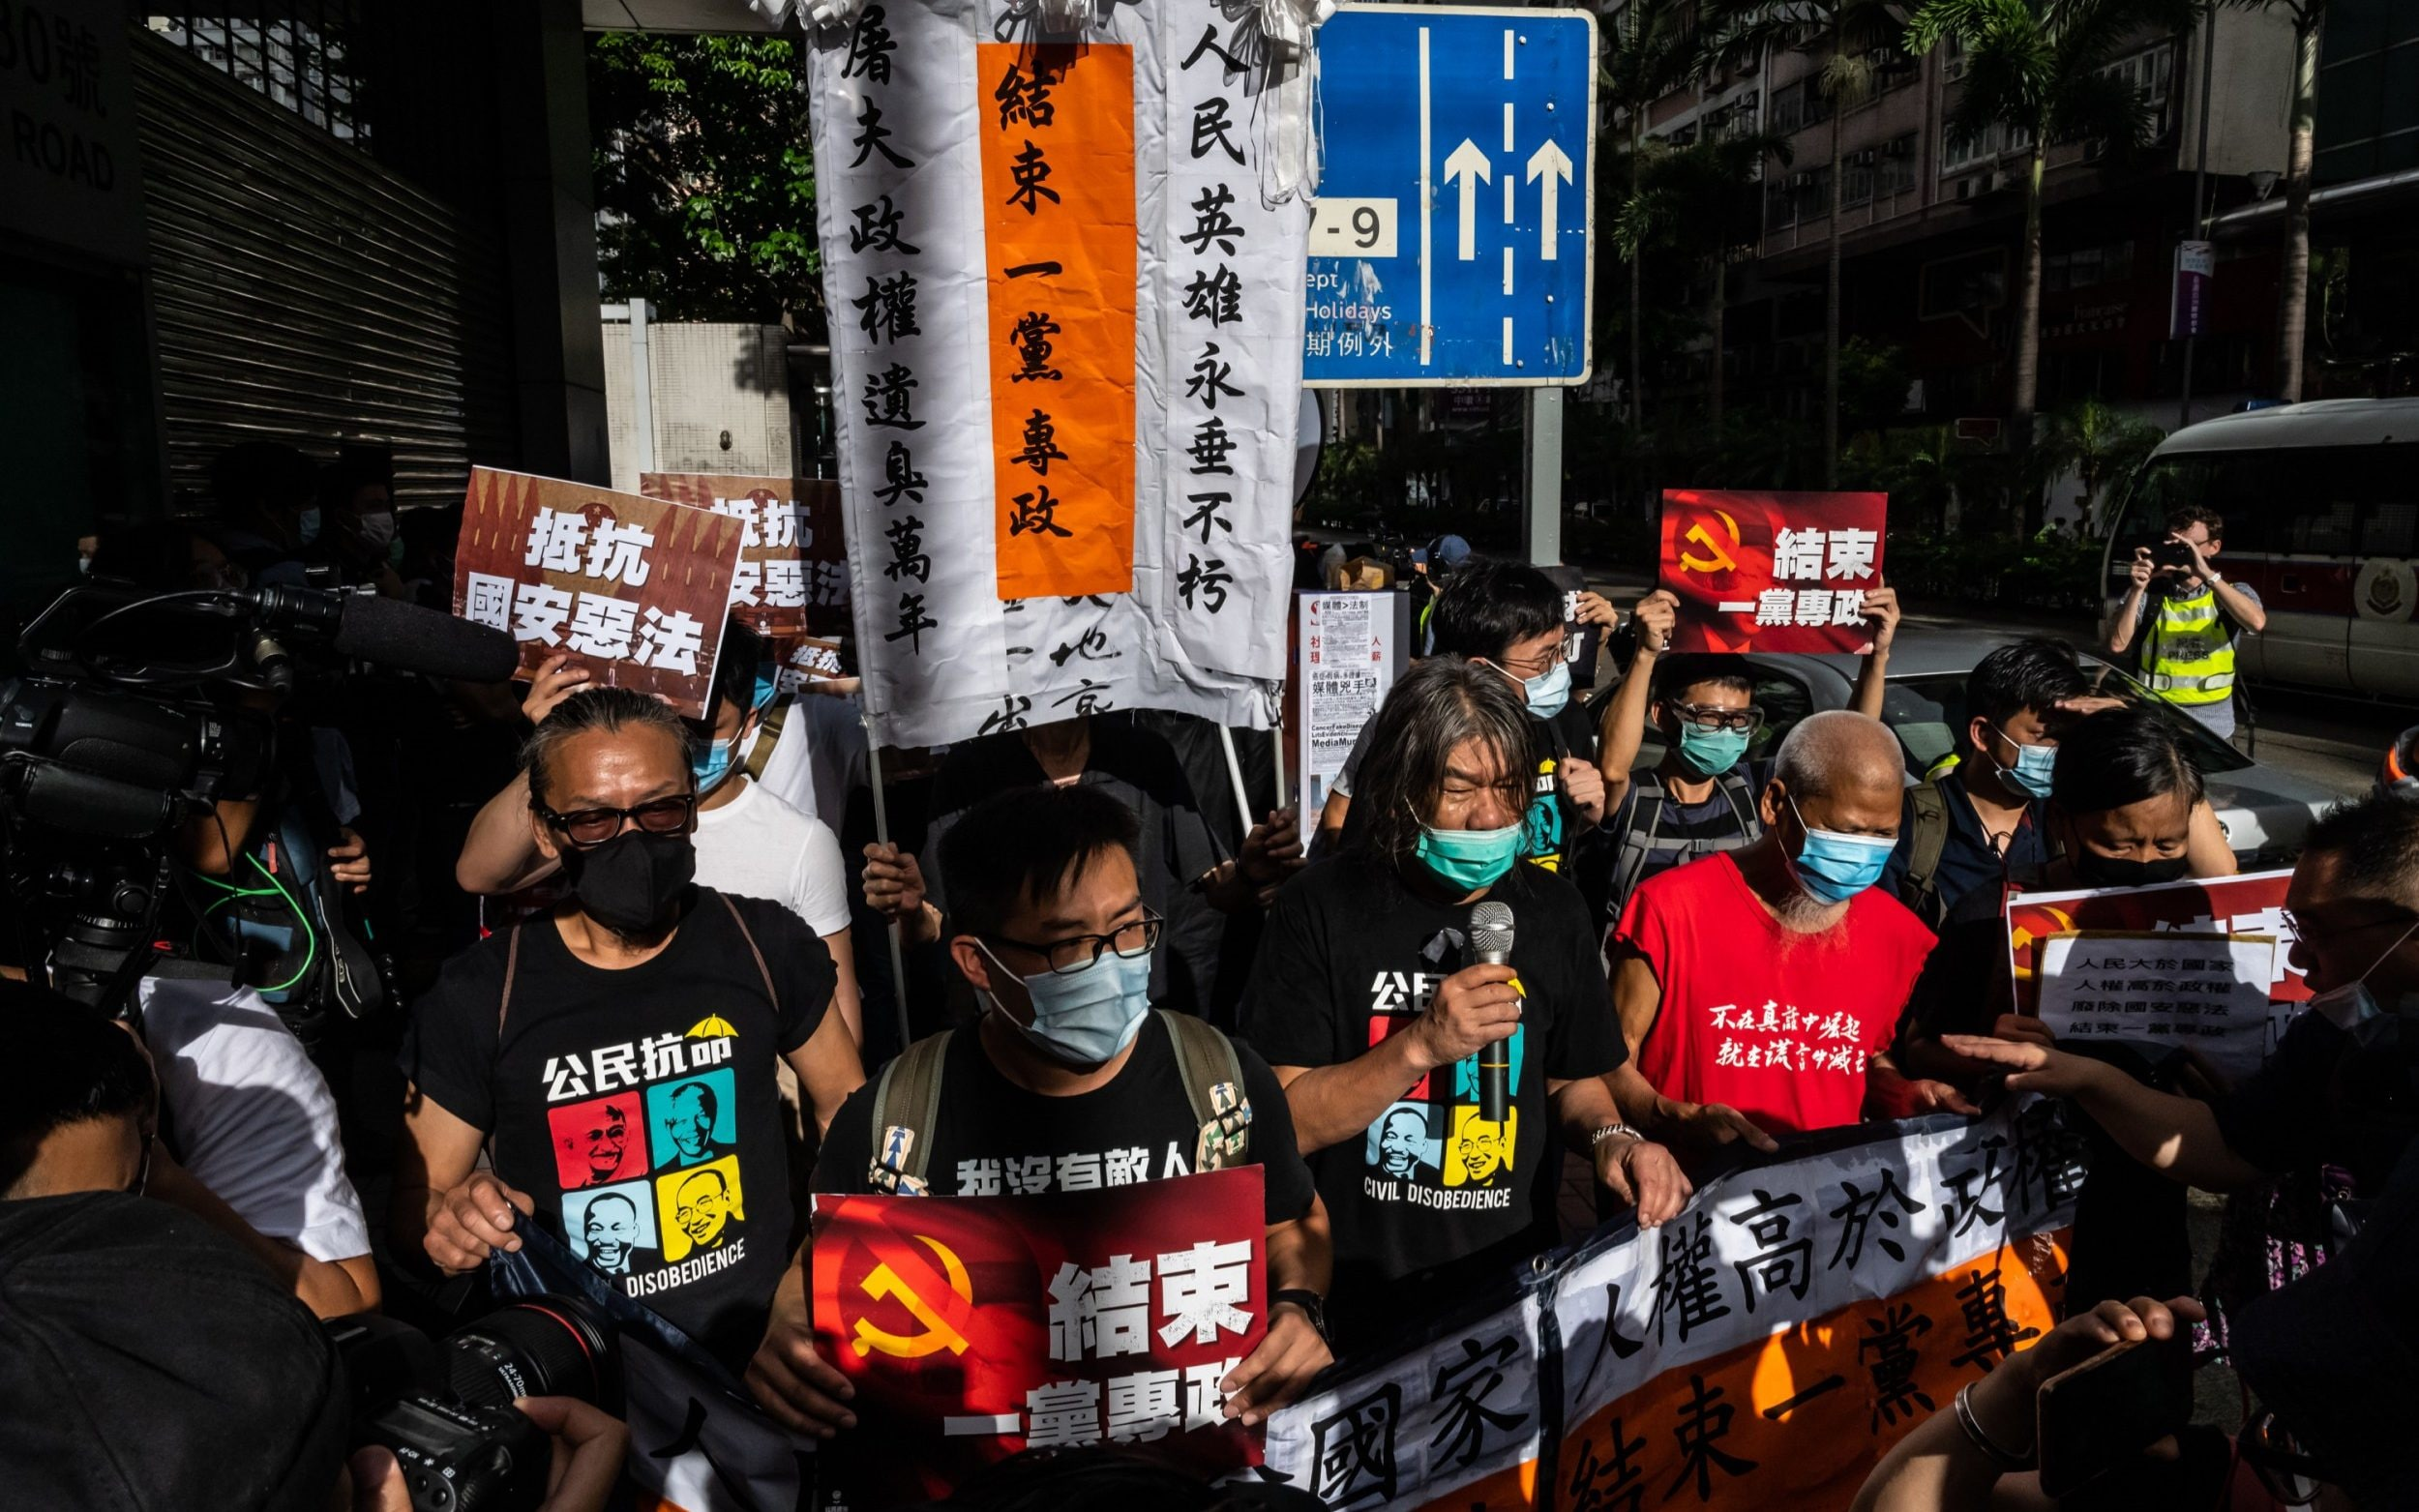 Hong Kong: Mike Pompeo threatens China with new measures after Beijing enacts draconian security law